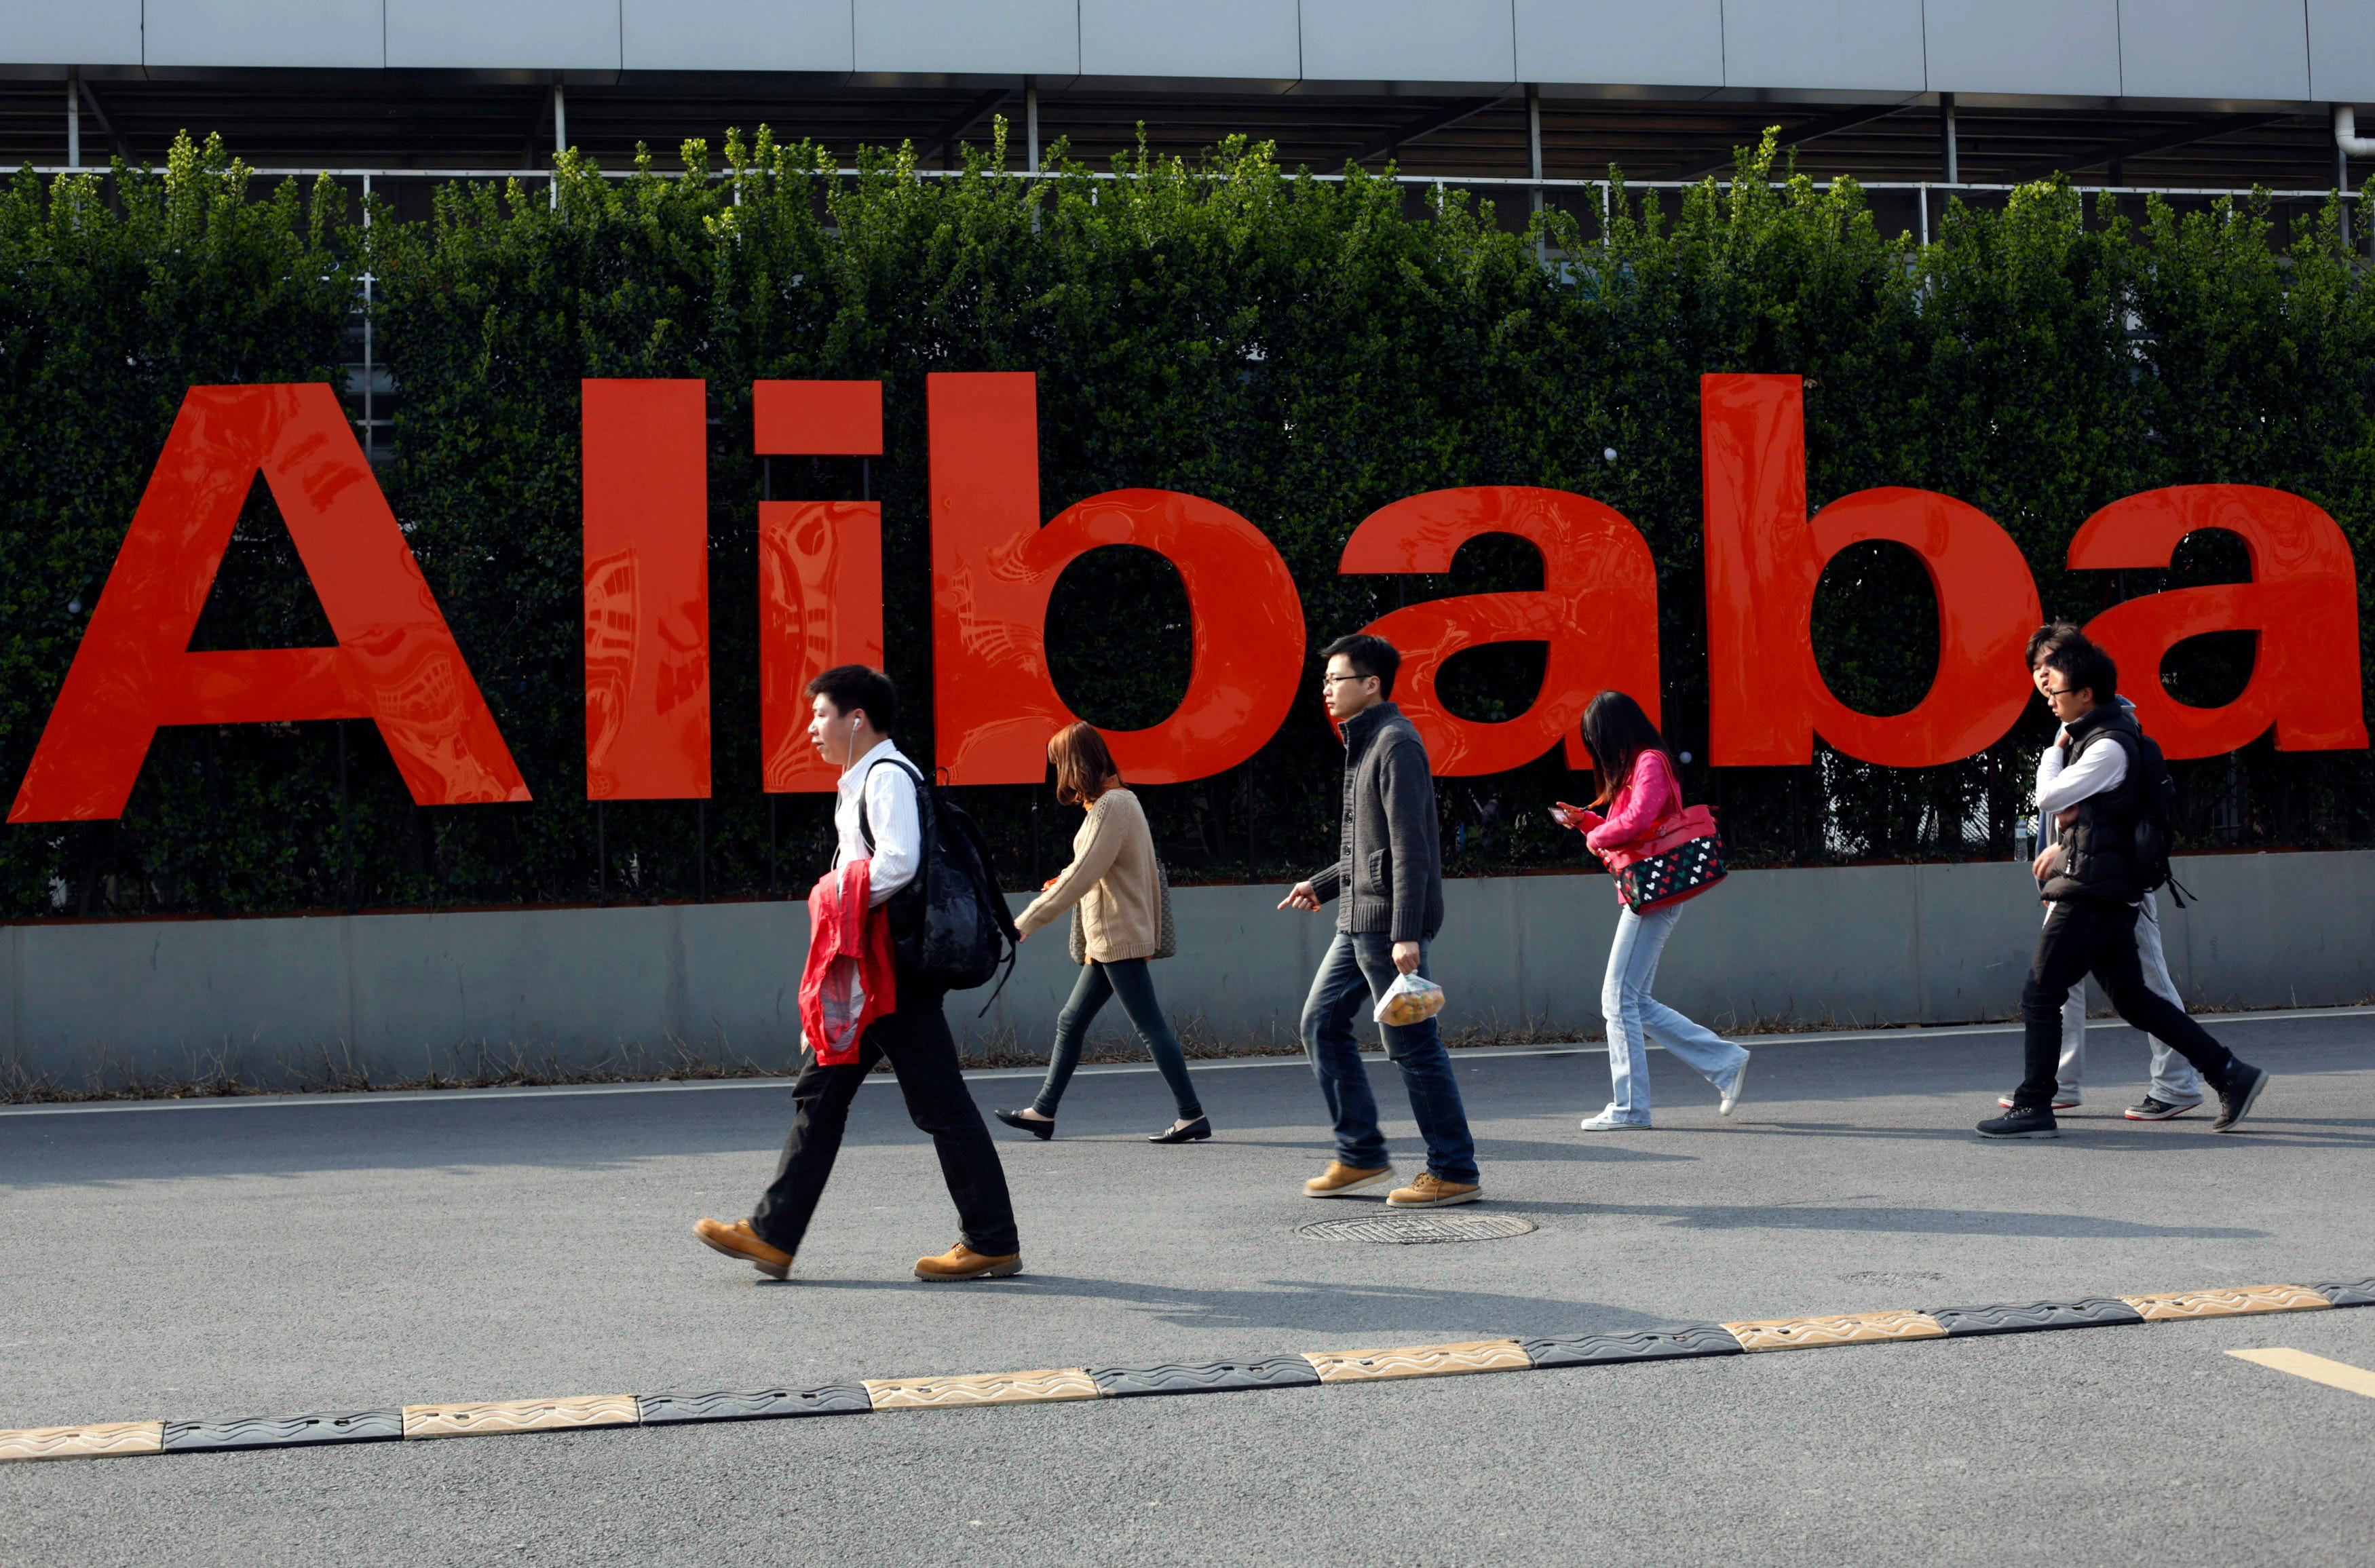 Head of anti fakes group closely tied to Alibaba